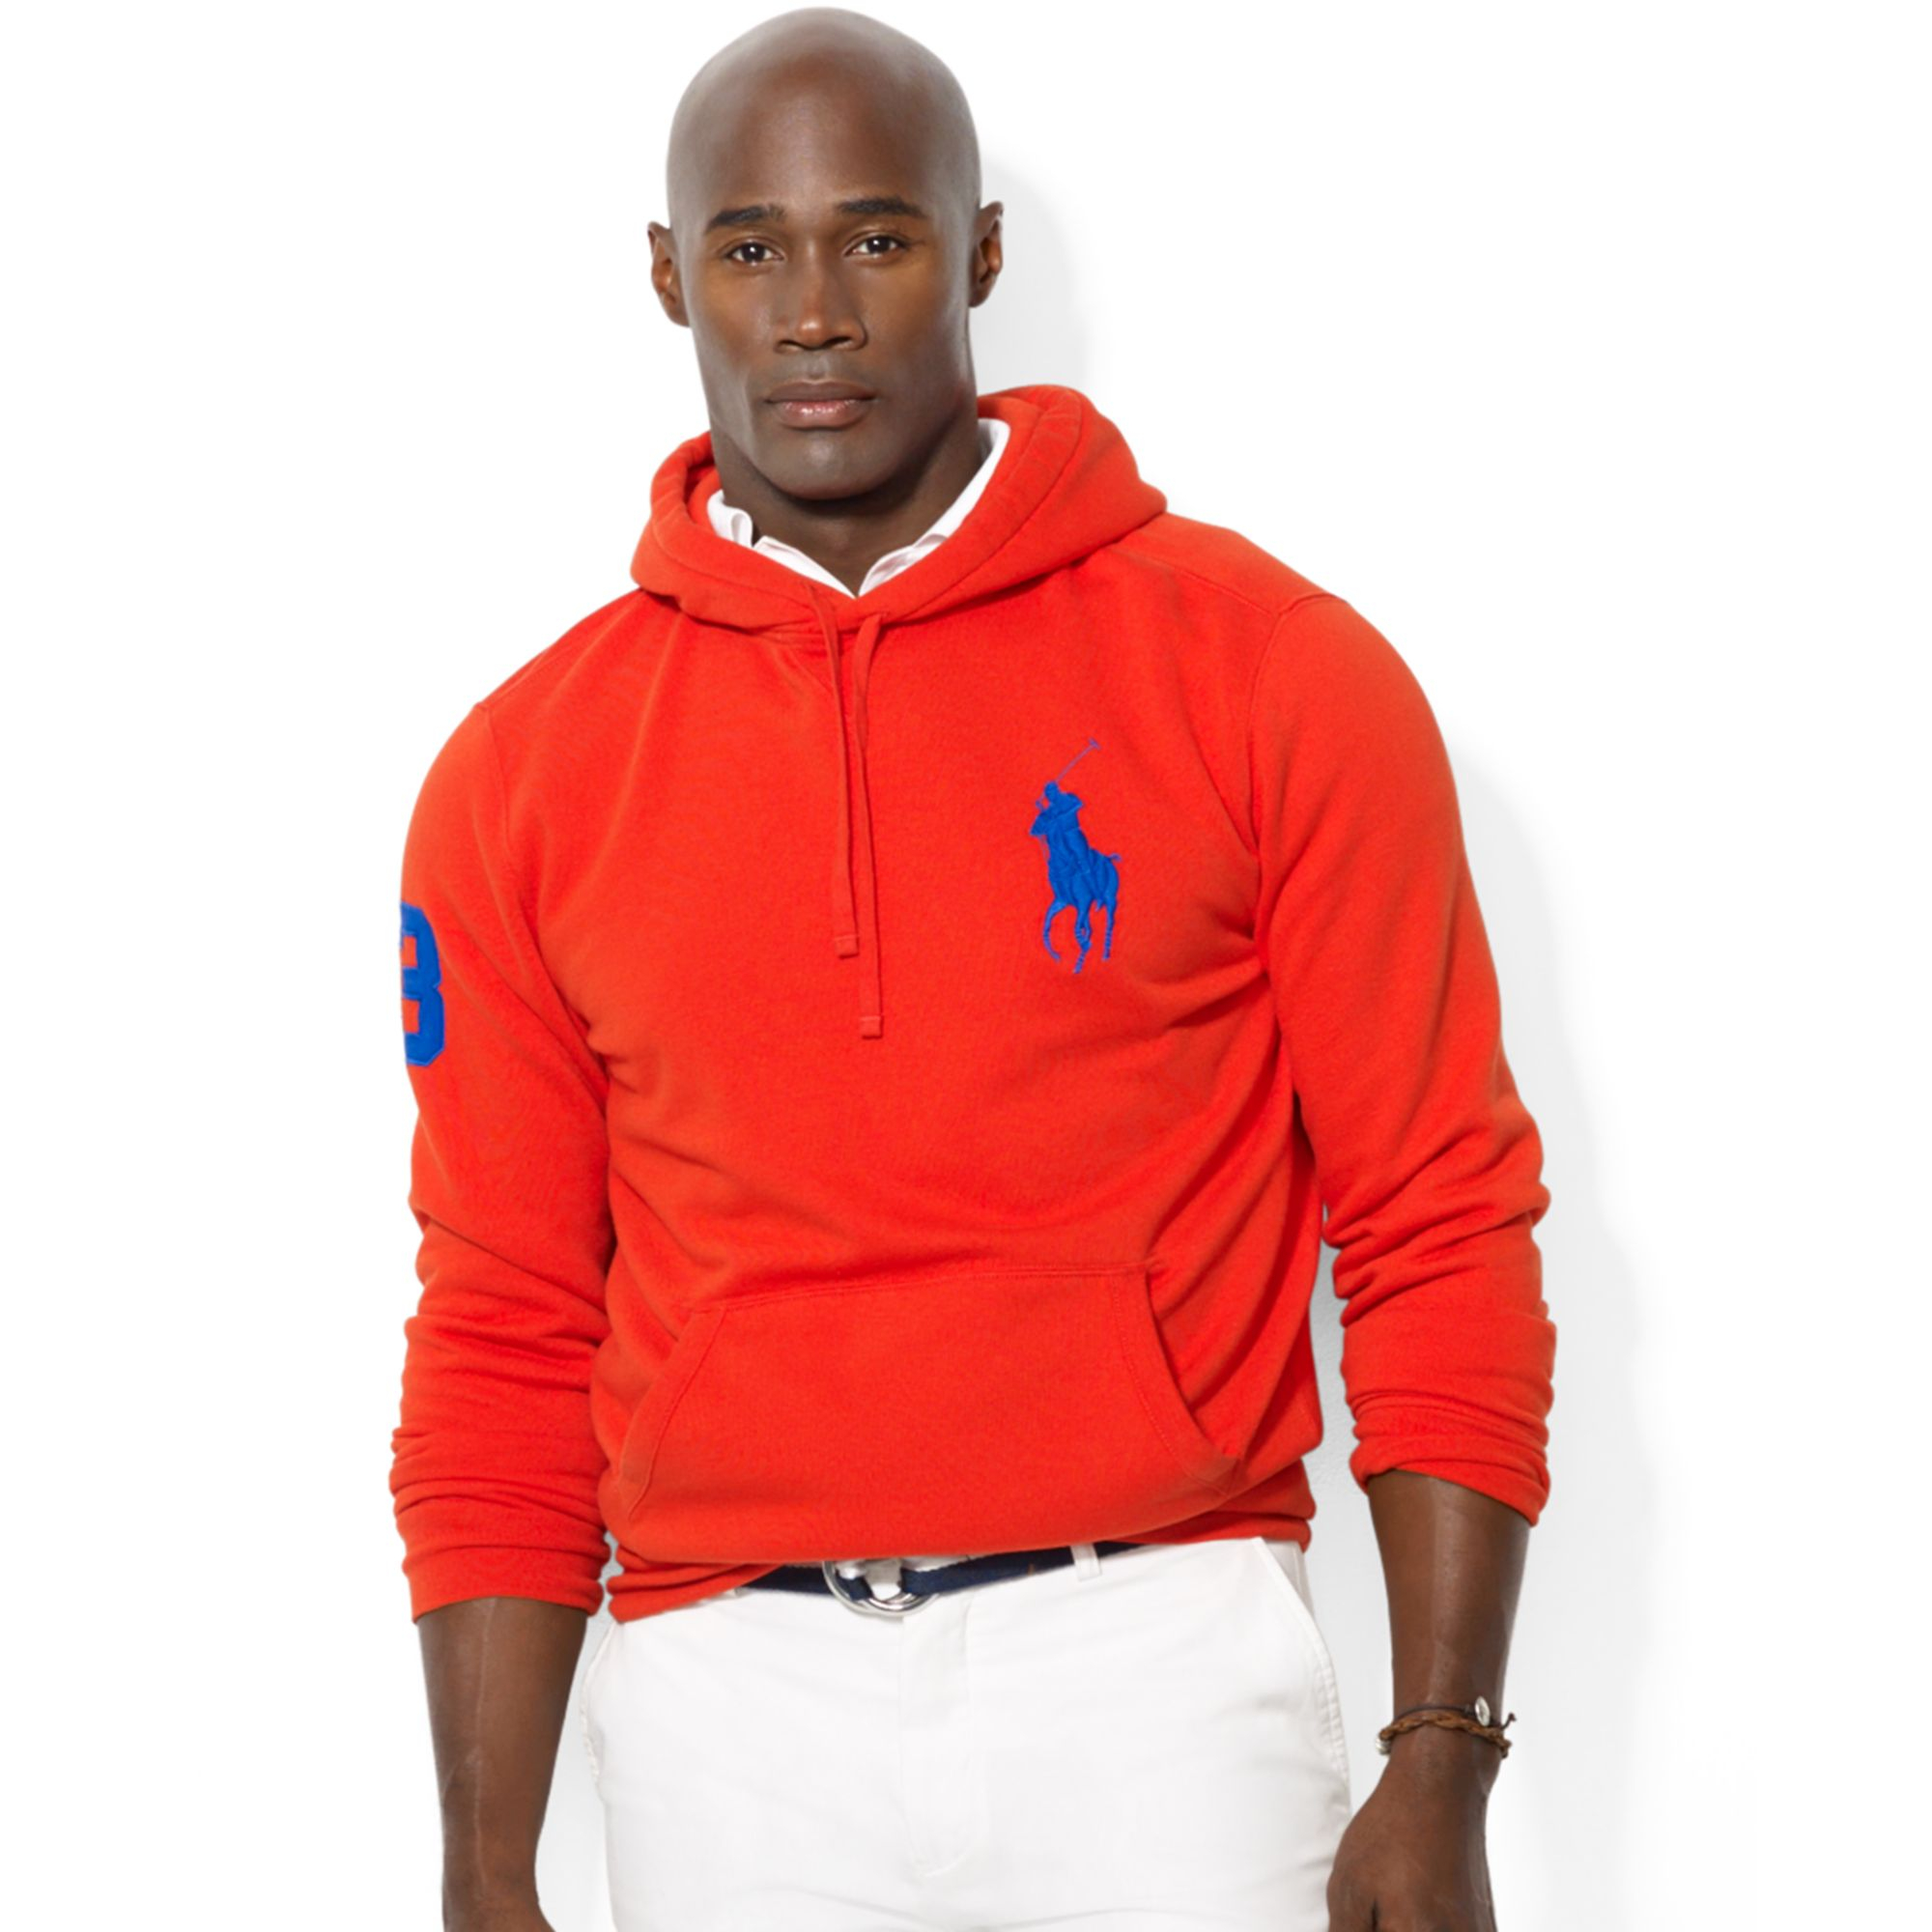 49e6200f75a1 ... french terry pullover hoodie in 1adcc 7ba36  czech lyst ralph lauren  polo big and tall big pony beach fleece pullover 7de43 49ed8